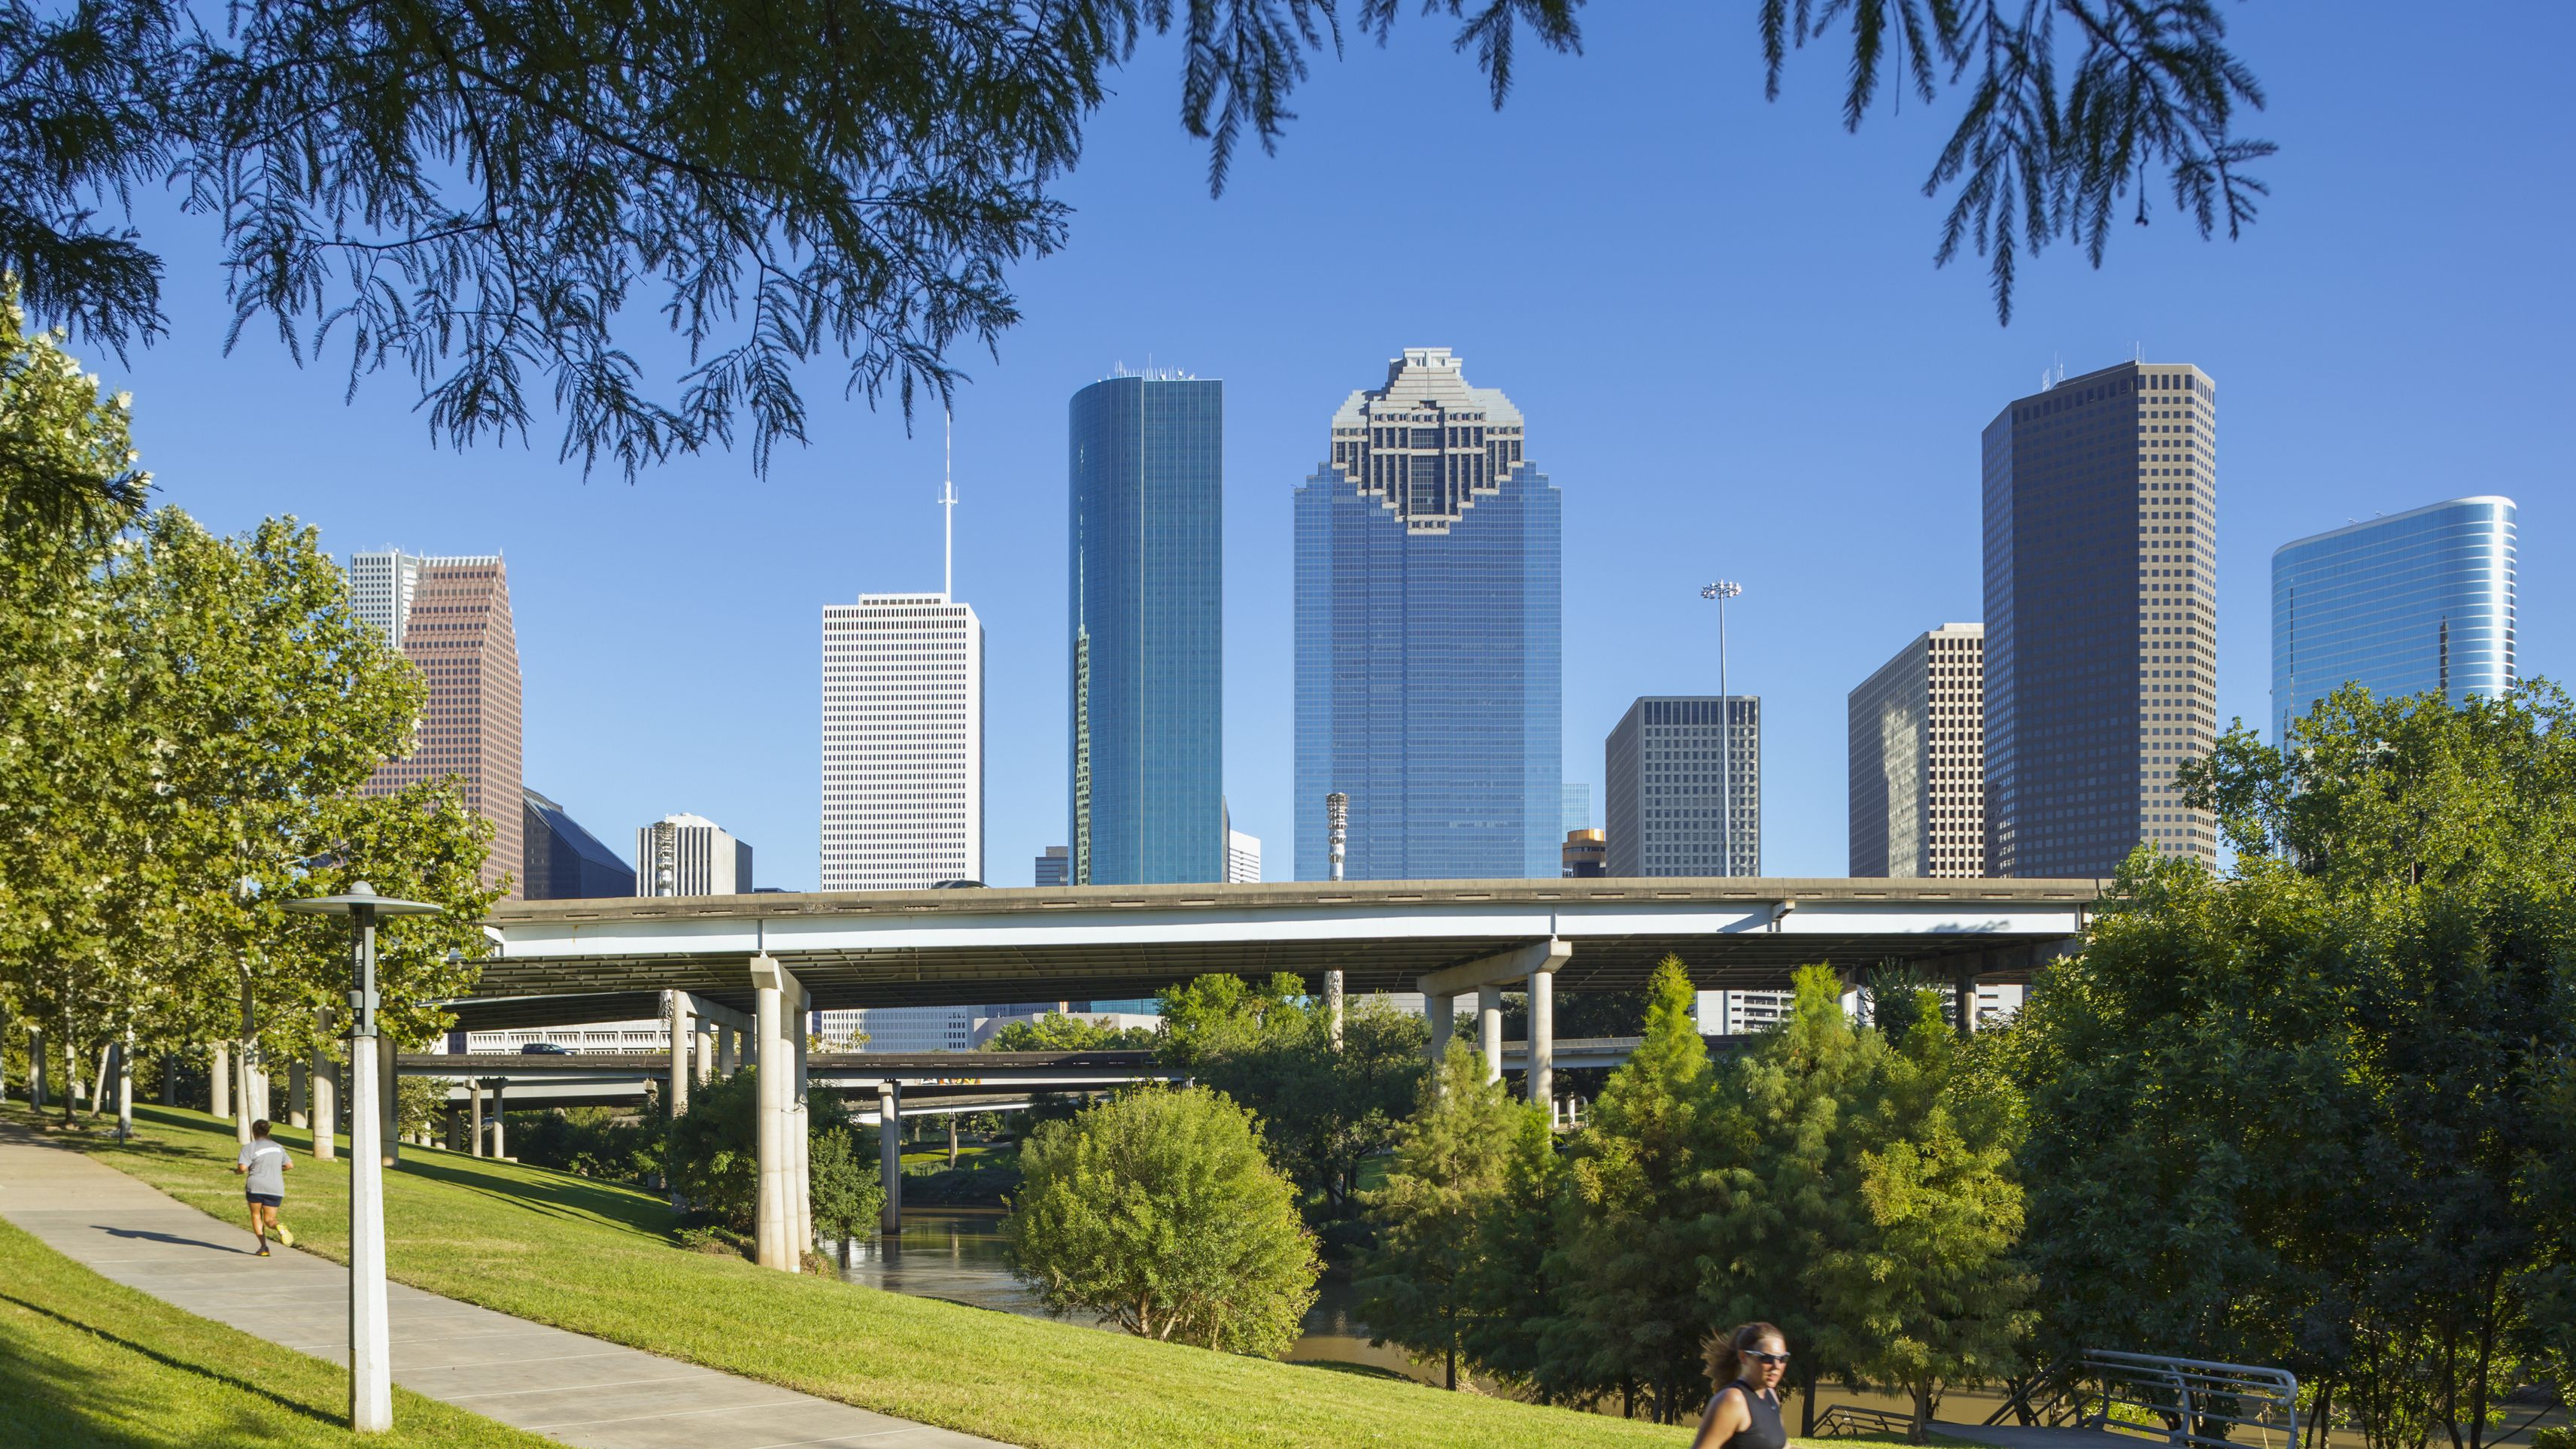 20 Best Attractions and Things To Do in Houston, Texas